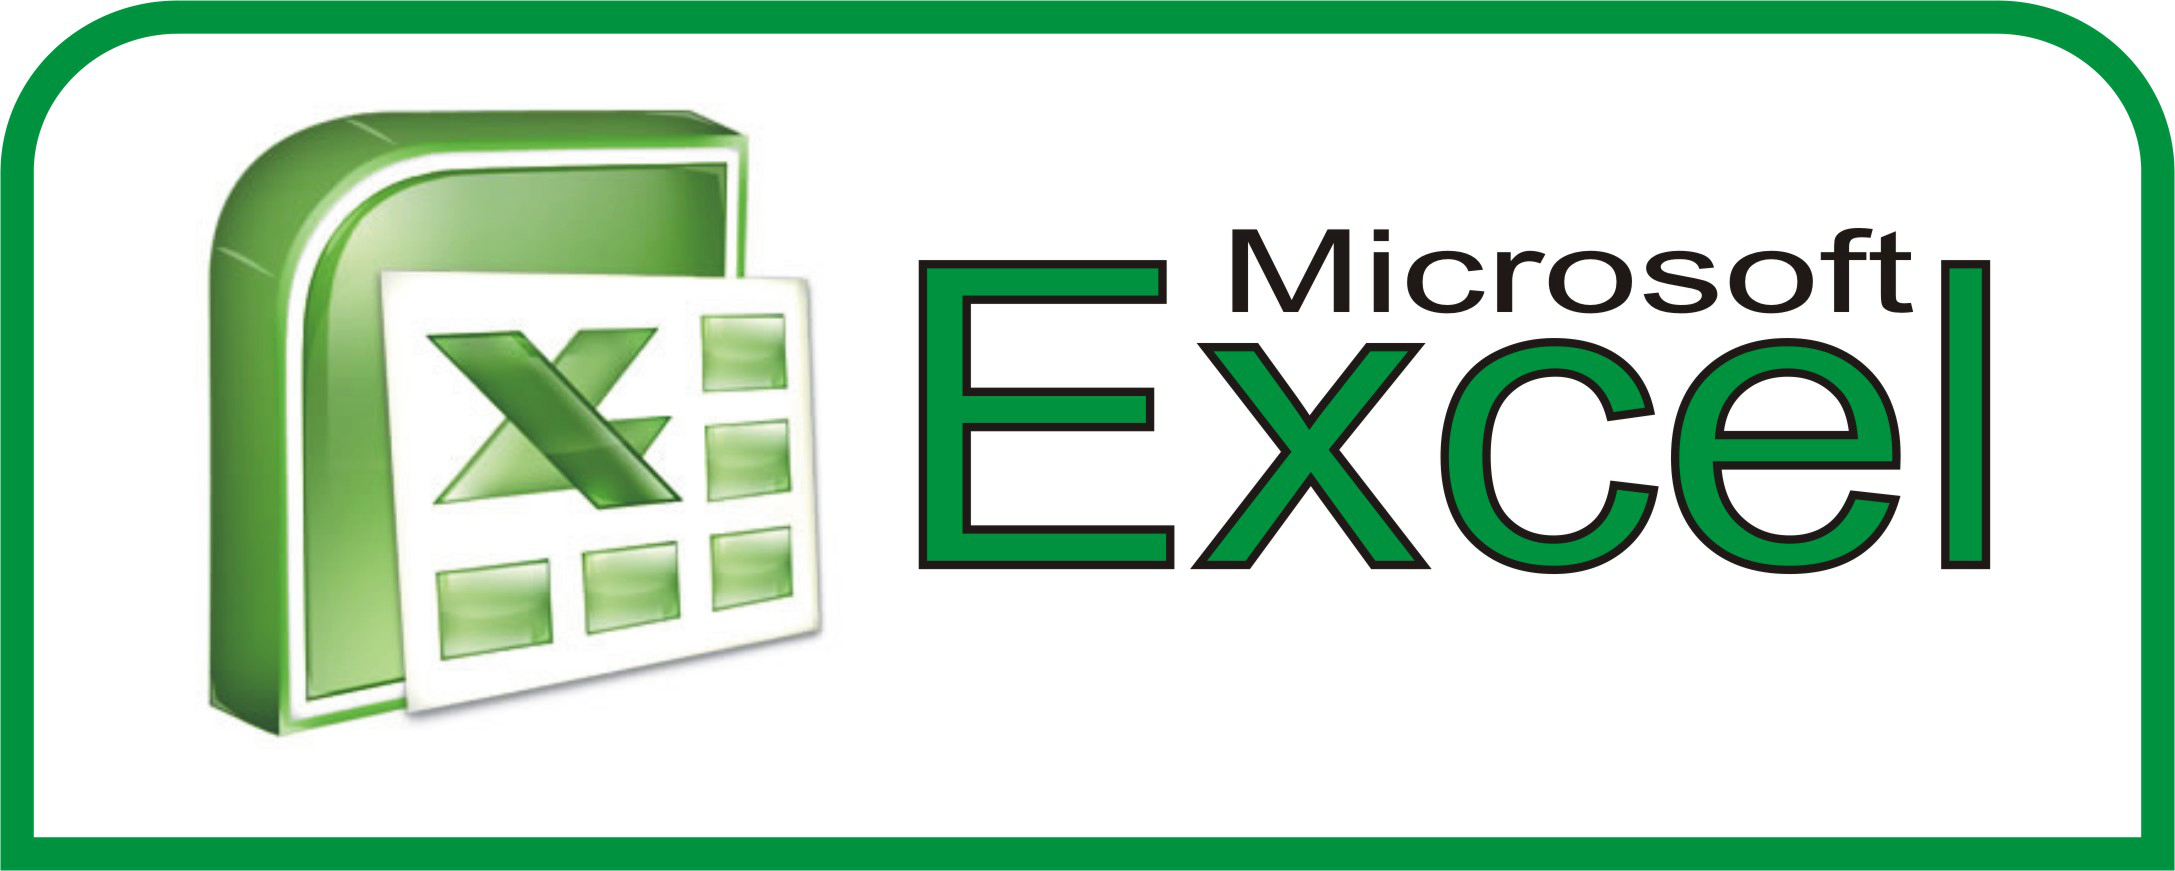 Ediblewildsus  Pretty  Excel Shortcuts You Probably Didnt Know About  Techdissected With Inspiring For Loops In Excel Besides Accounting Template Excel Furthermore Excel Sort By Multiple Columns With Comely How To Make Charts In Excel  Also Excel If Color Cell In Addition Learn Excel Formulas And Excel Function For Division As Well As Excel Drop Down List From Another Sheet Additionally Daily Planner Excel From Techdissectedcom With Ediblewildsus  Inspiring  Excel Shortcuts You Probably Didnt Know About  Techdissected With Comely For Loops In Excel Besides Accounting Template Excel Furthermore Excel Sort By Multiple Columns And Pretty How To Make Charts In Excel  Also Excel If Color Cell In Addition Learn Excel Formulas From Techdissectedcom